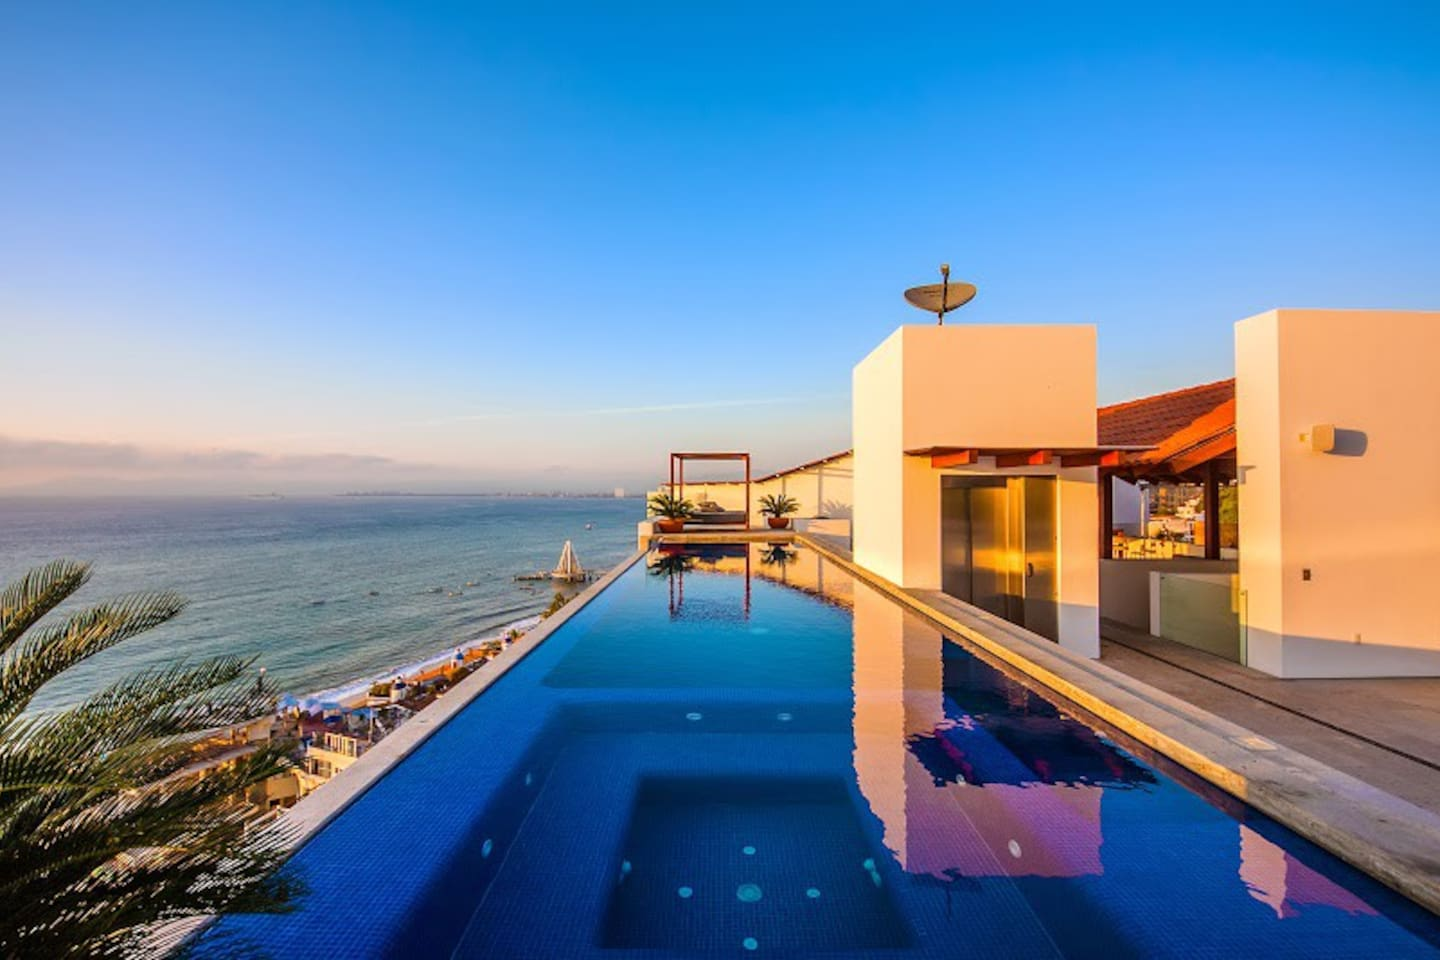 Stunning roof top infinity pool only 2 floors up from the suite! Feeling lazy? Take the elevator! Views of Beach, water and city!